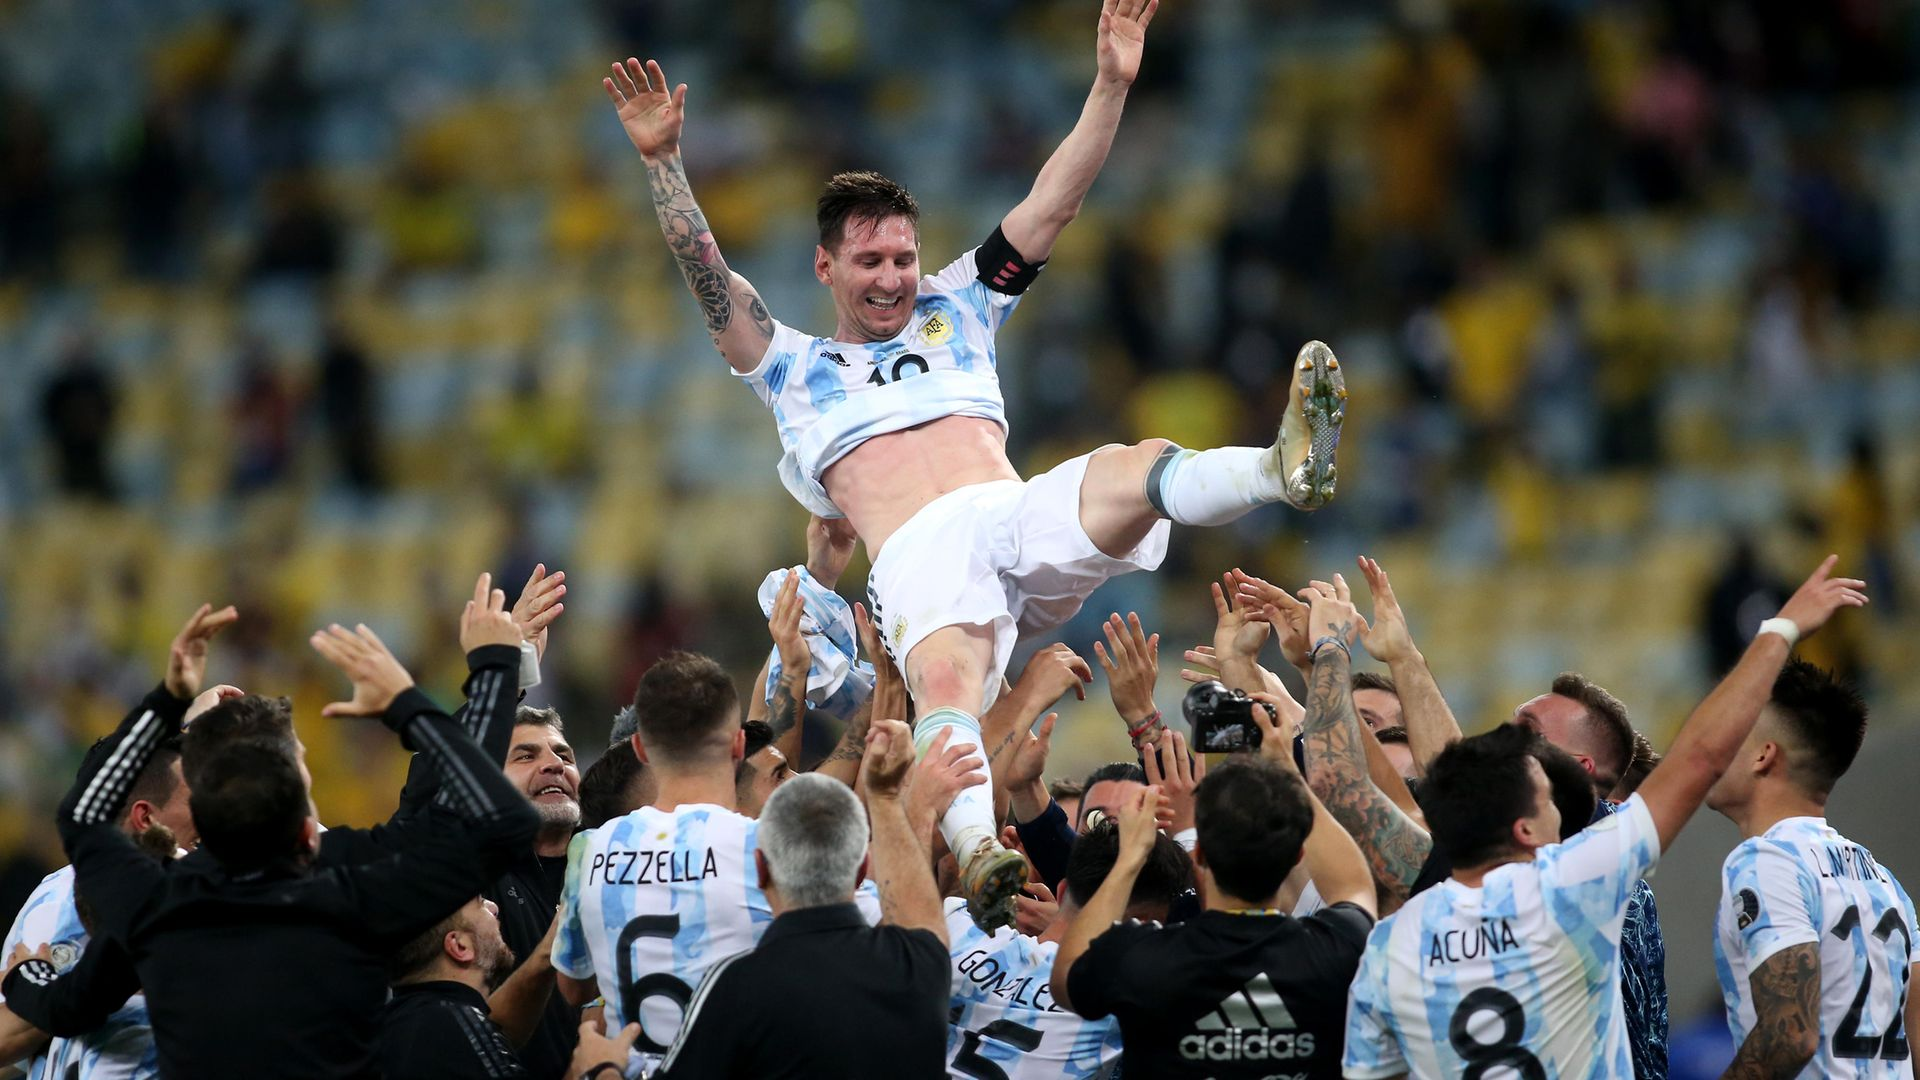 Argentina players throw Lionel Messi in the air after beating Brazil in the Copa America final - Credit: Photo by MB Media/Getty Images